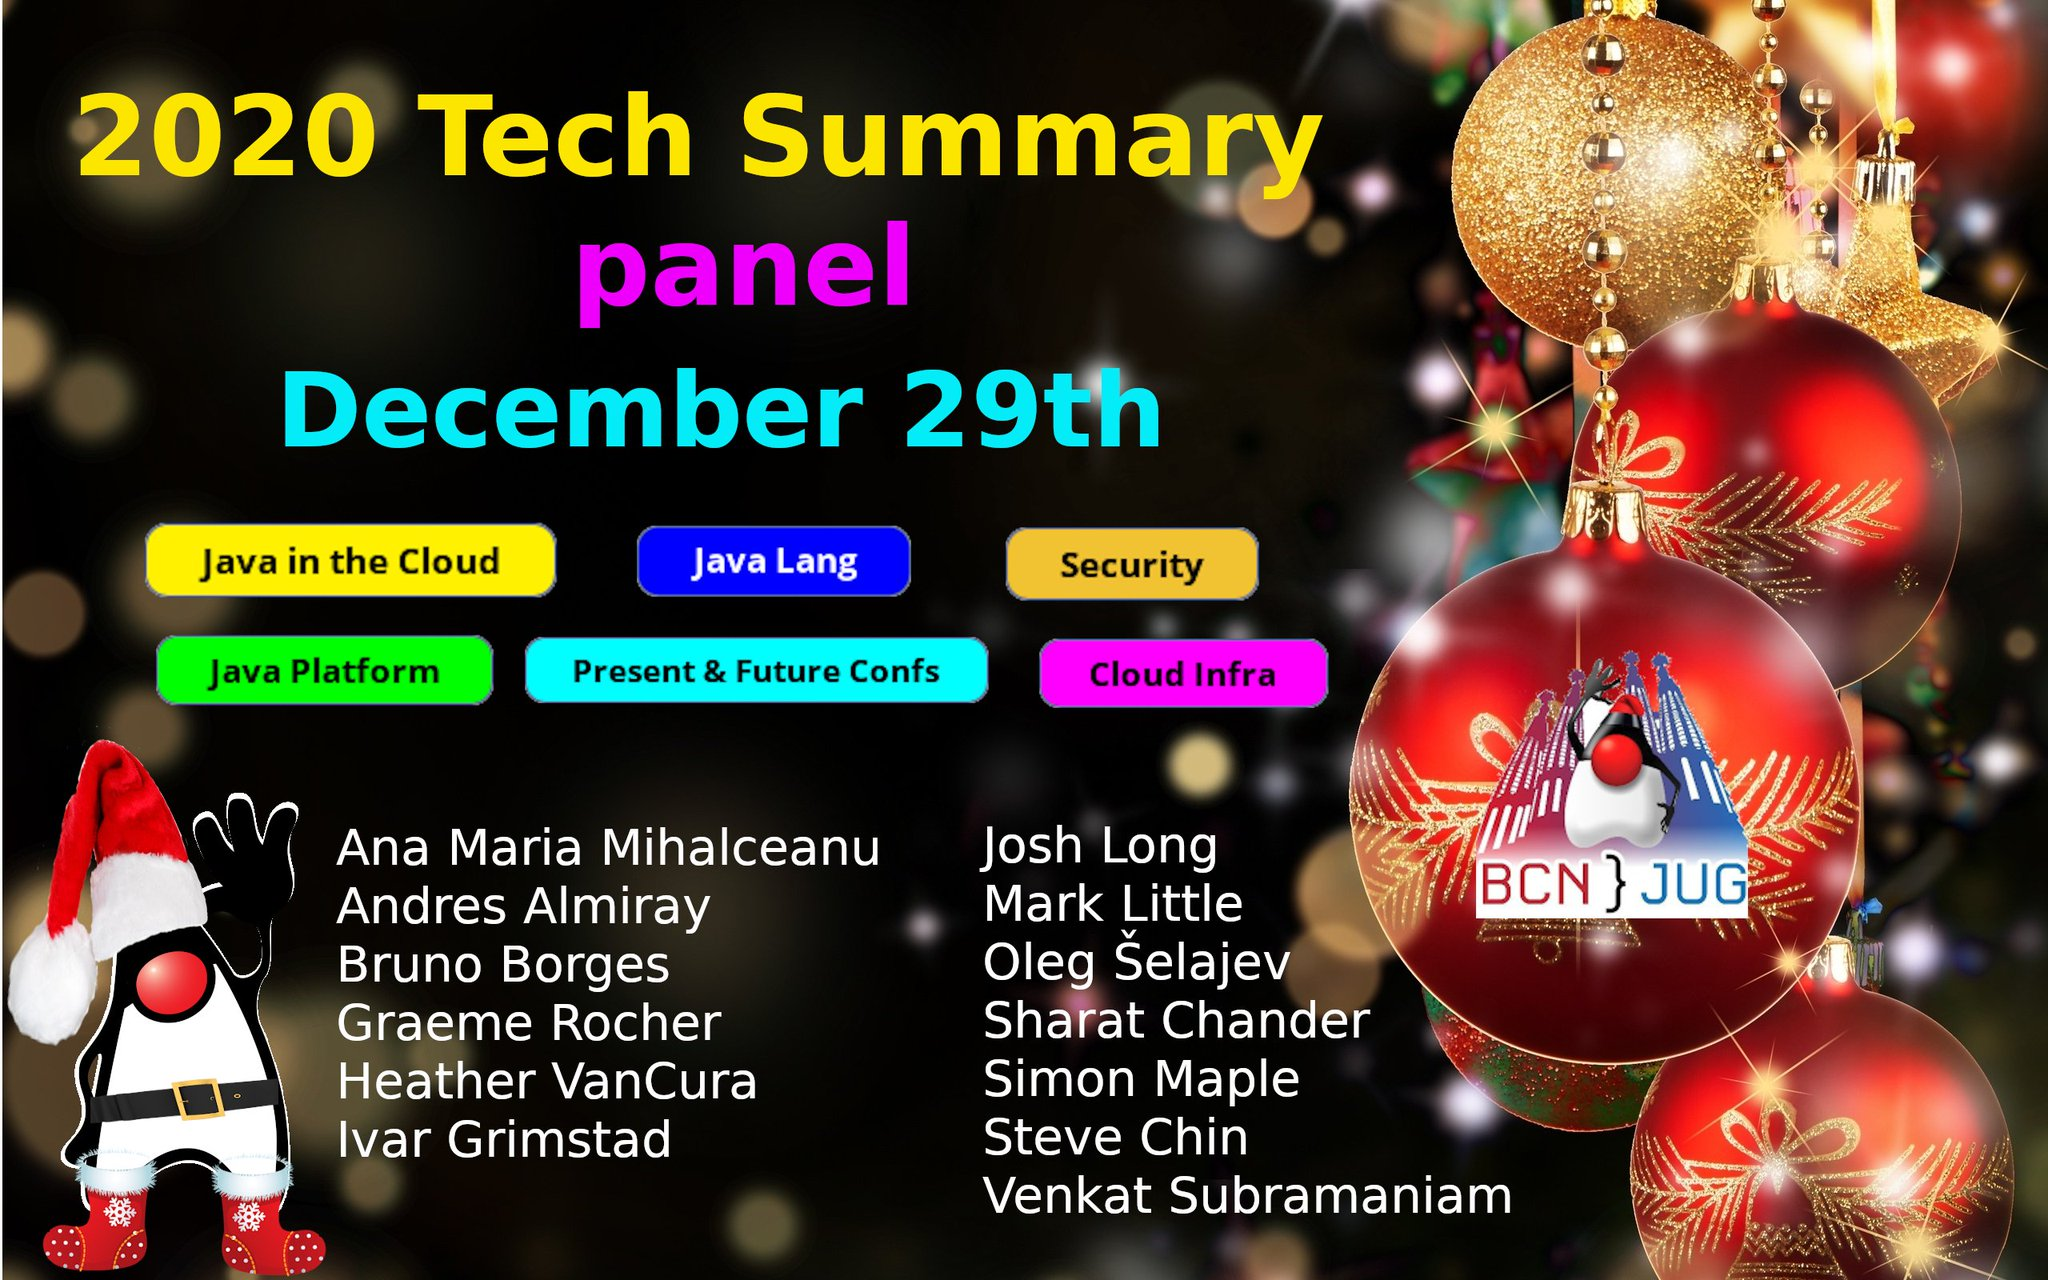 2020 Tech Summit Panel